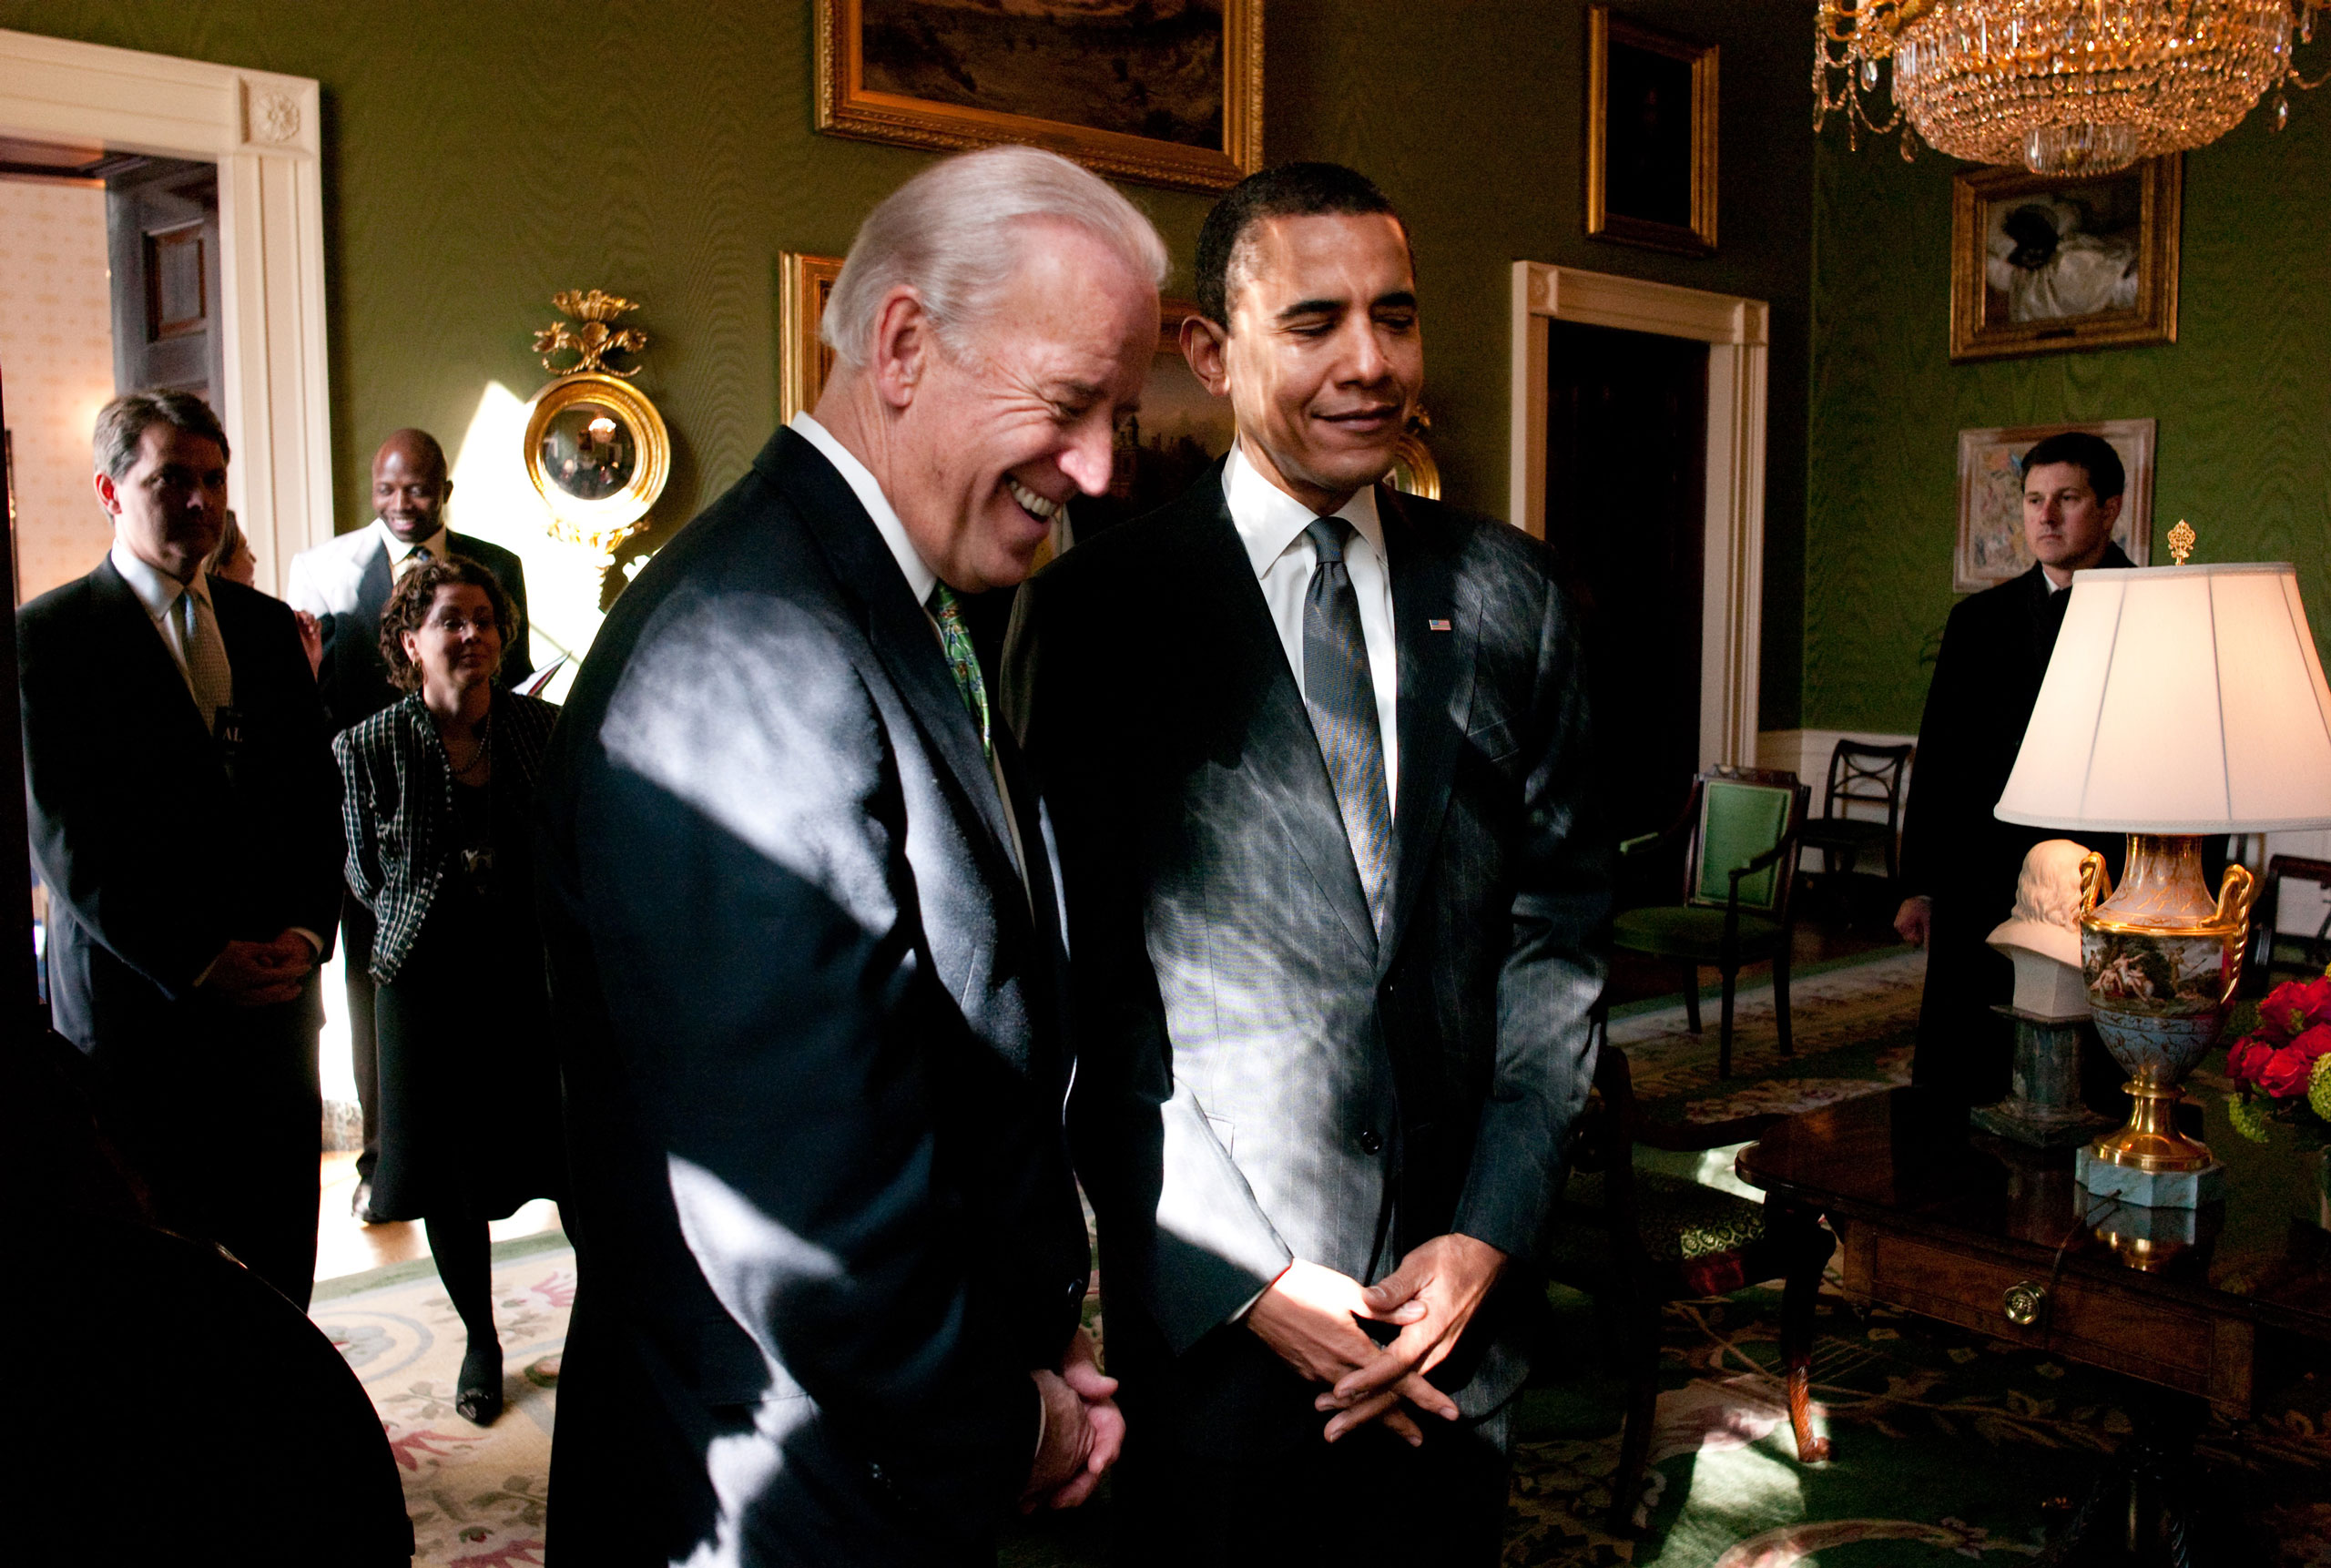 President Barack Obama and Vice President Joe Biden in the Green Room prior to a meeting with U.S. Mayors, Feb. 20, 2009.